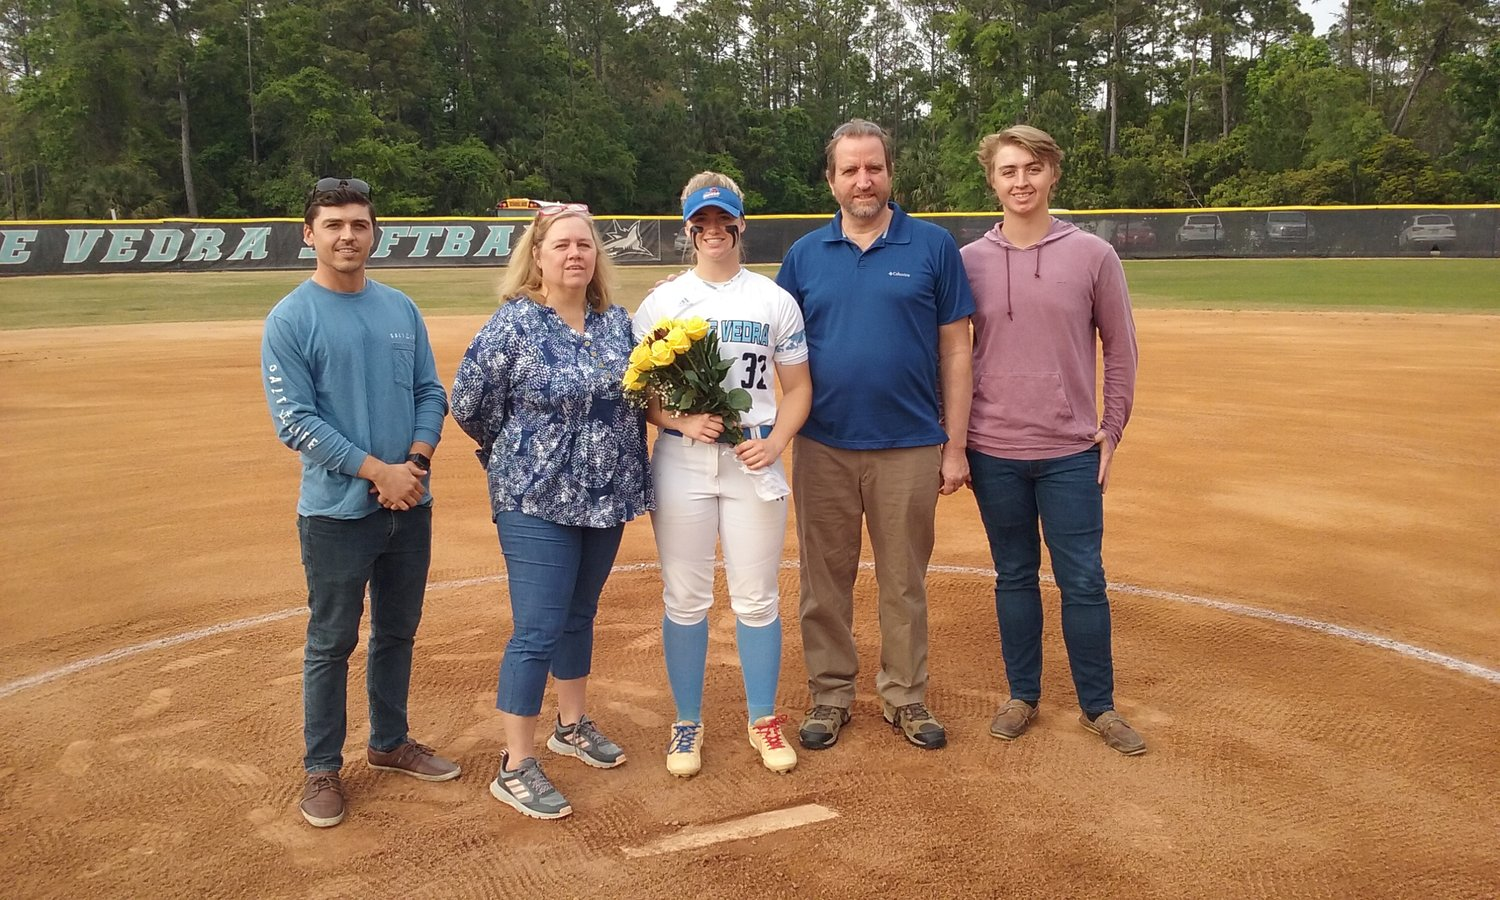 PVHS senior Tara McGee was honored recently by the Sharks women's softball team. Pictured from left are brother Kevin, mom Tammy, Tara, dad Mark and brother Cooper.